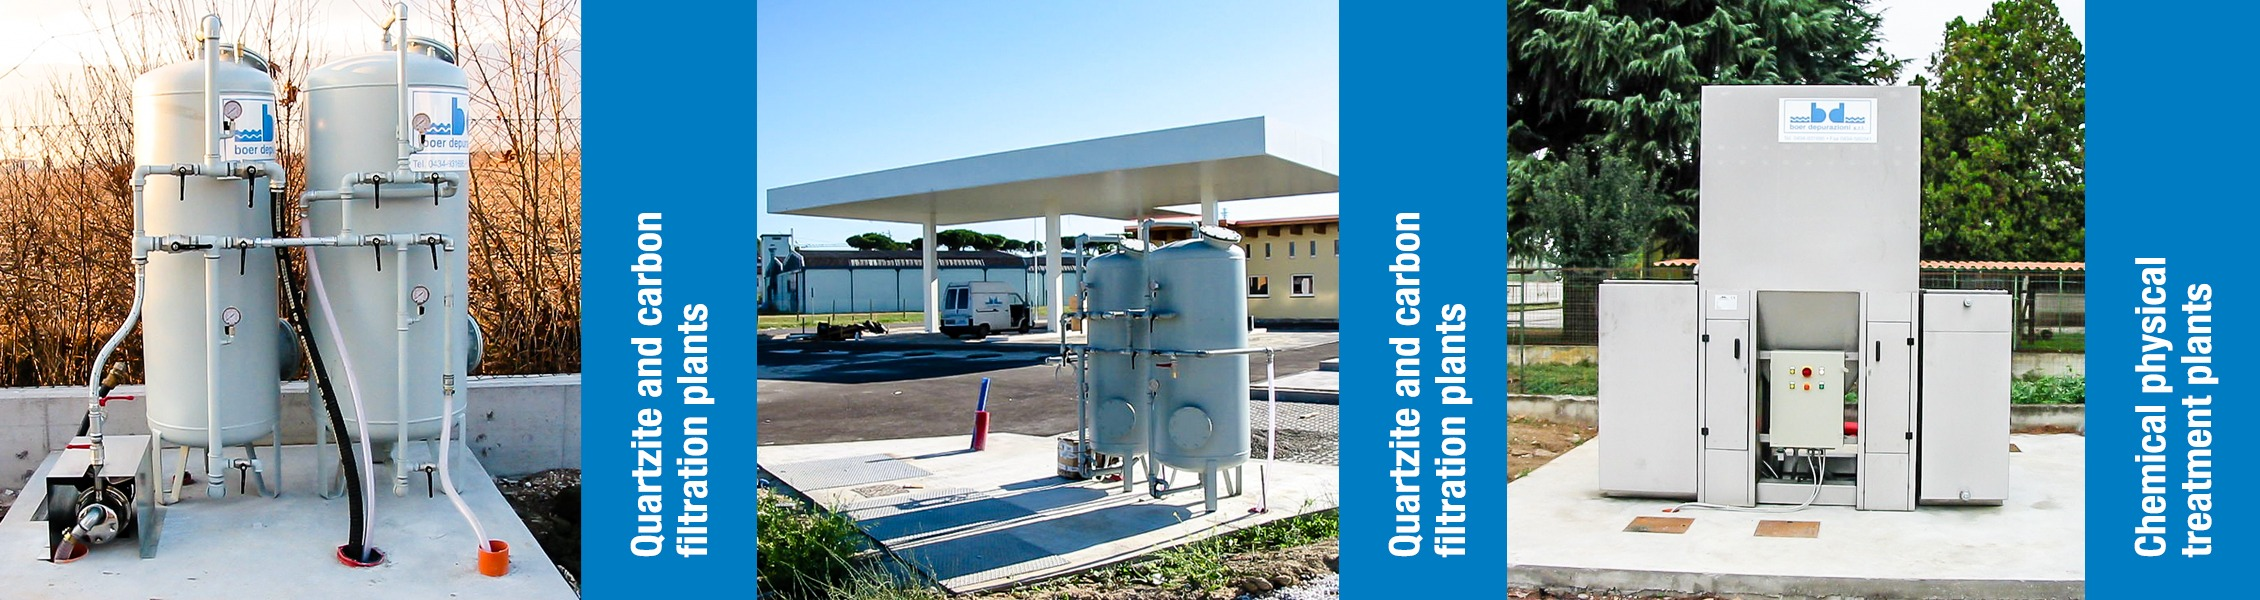 Boer Group SRL, Concrete products and water treatments plants